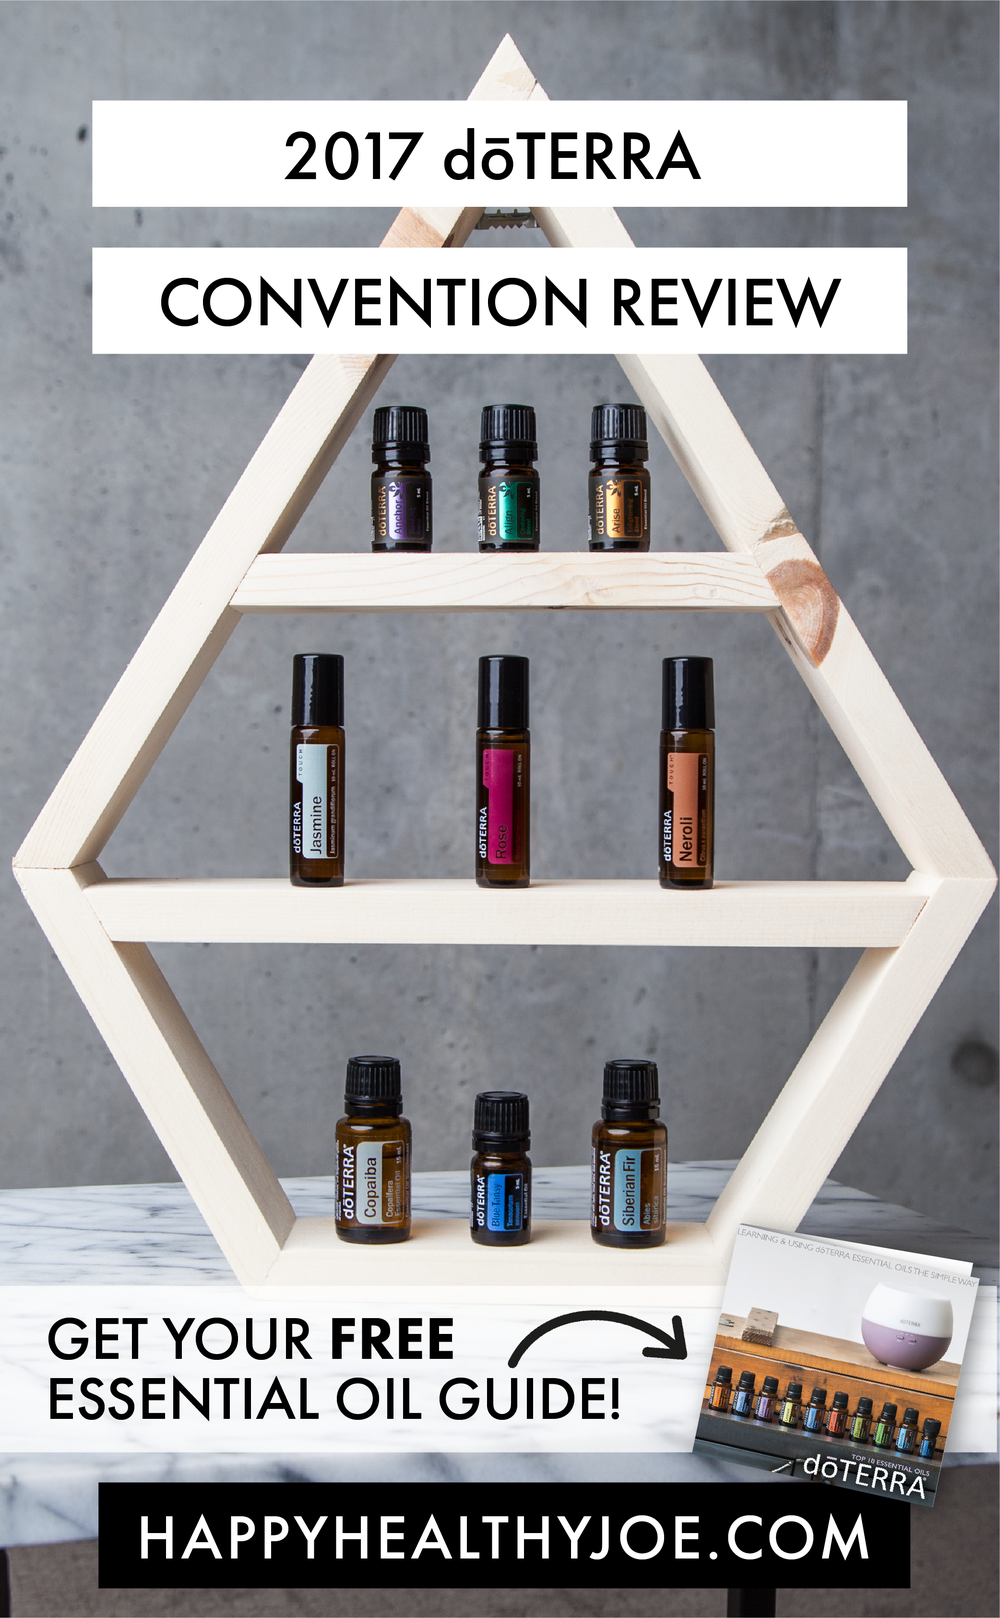 2017 dōTERRA Essential Oils Convention Review